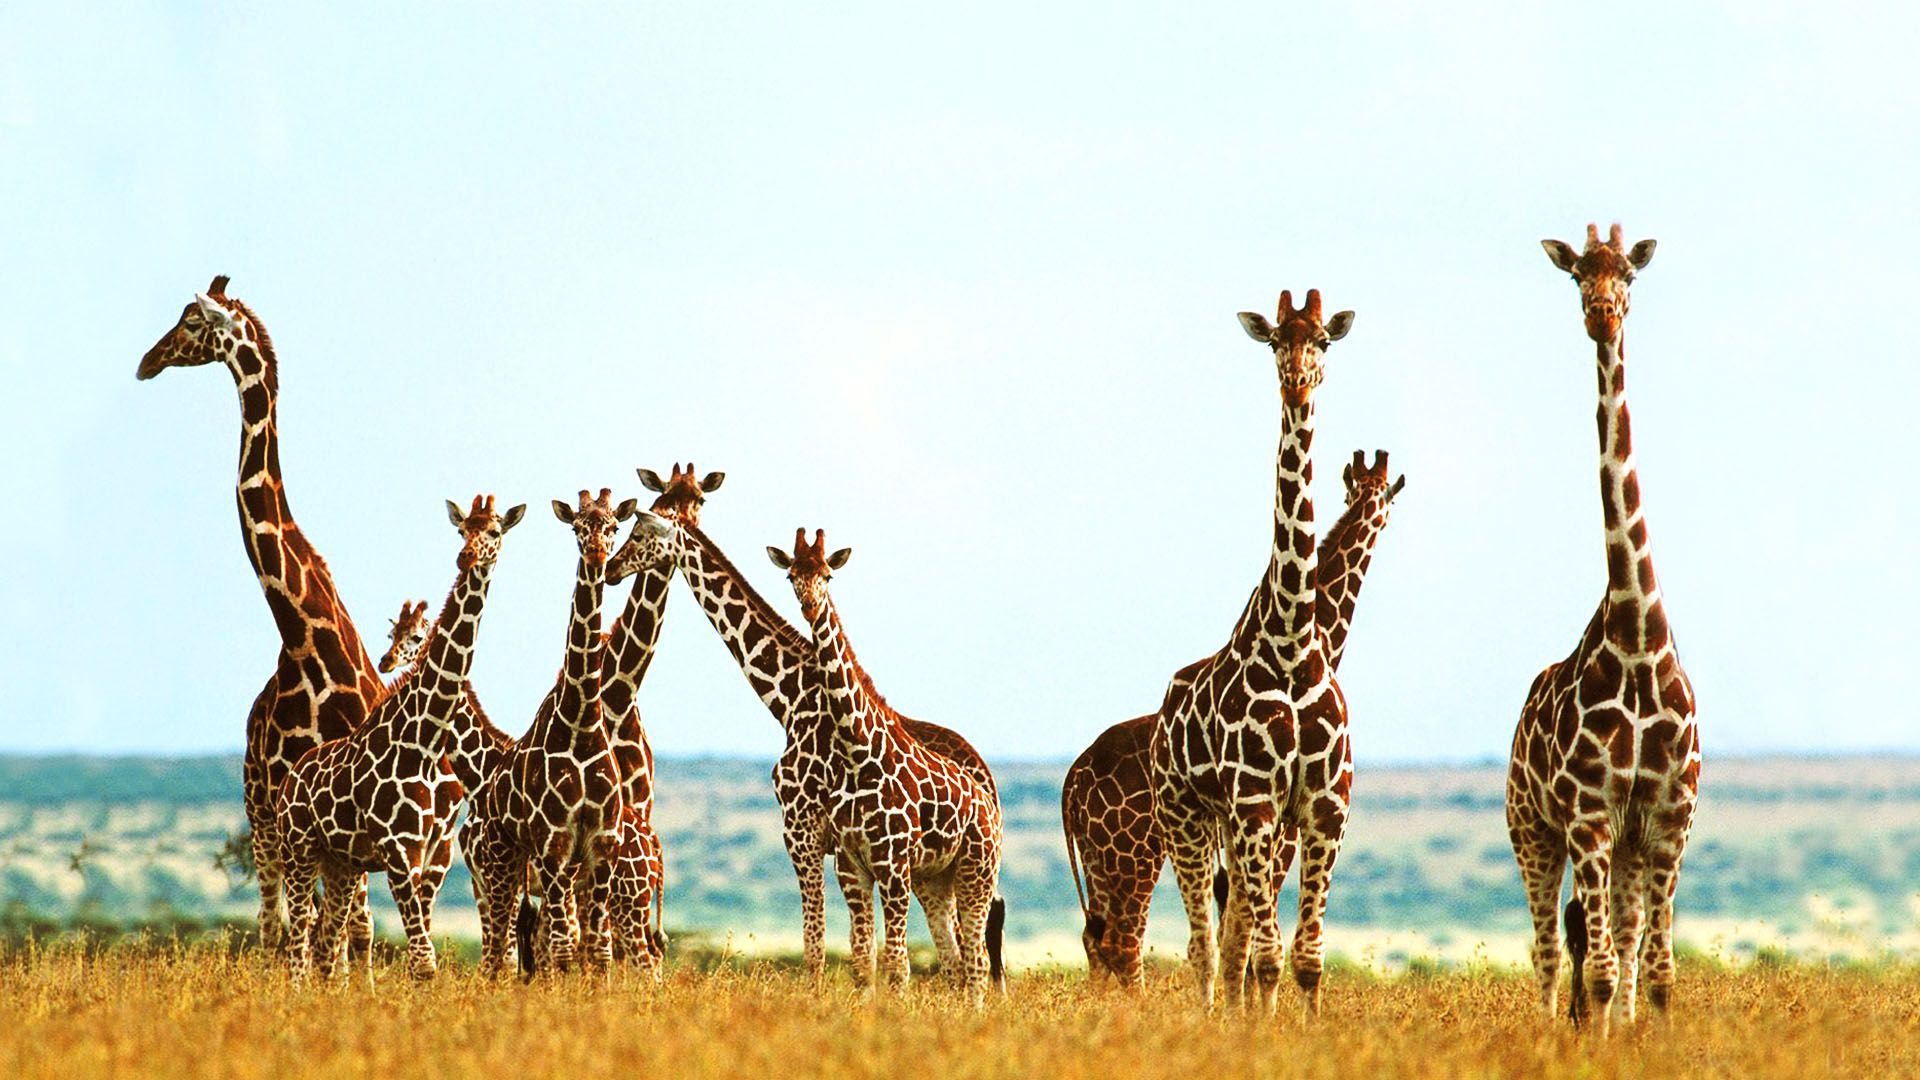 Giraffe Desktop Wallpaper